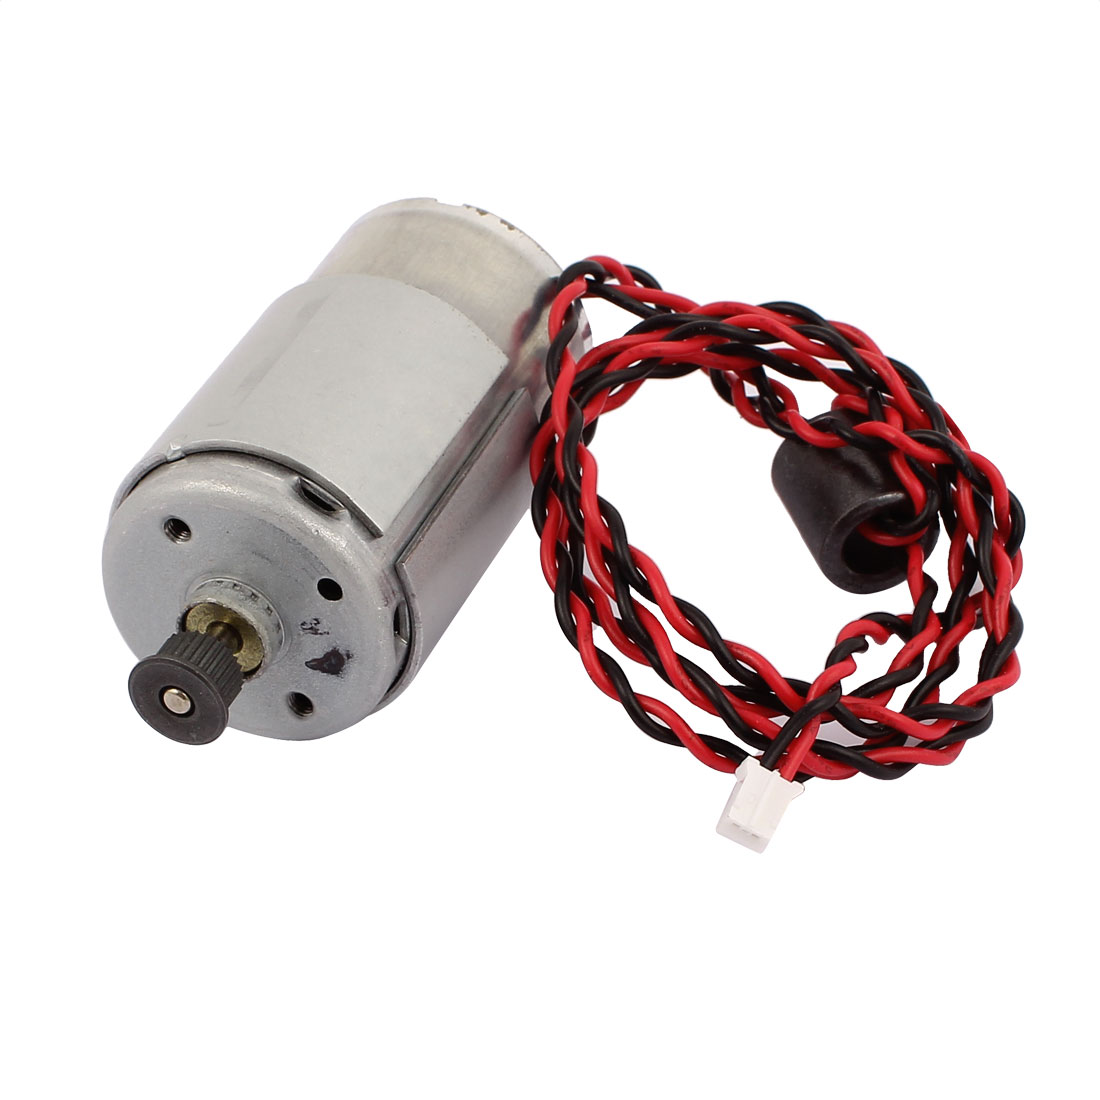 DC 12V-48V 3000-12000RPM Speed Wind Turbine 455 DC Motor for Power Generation